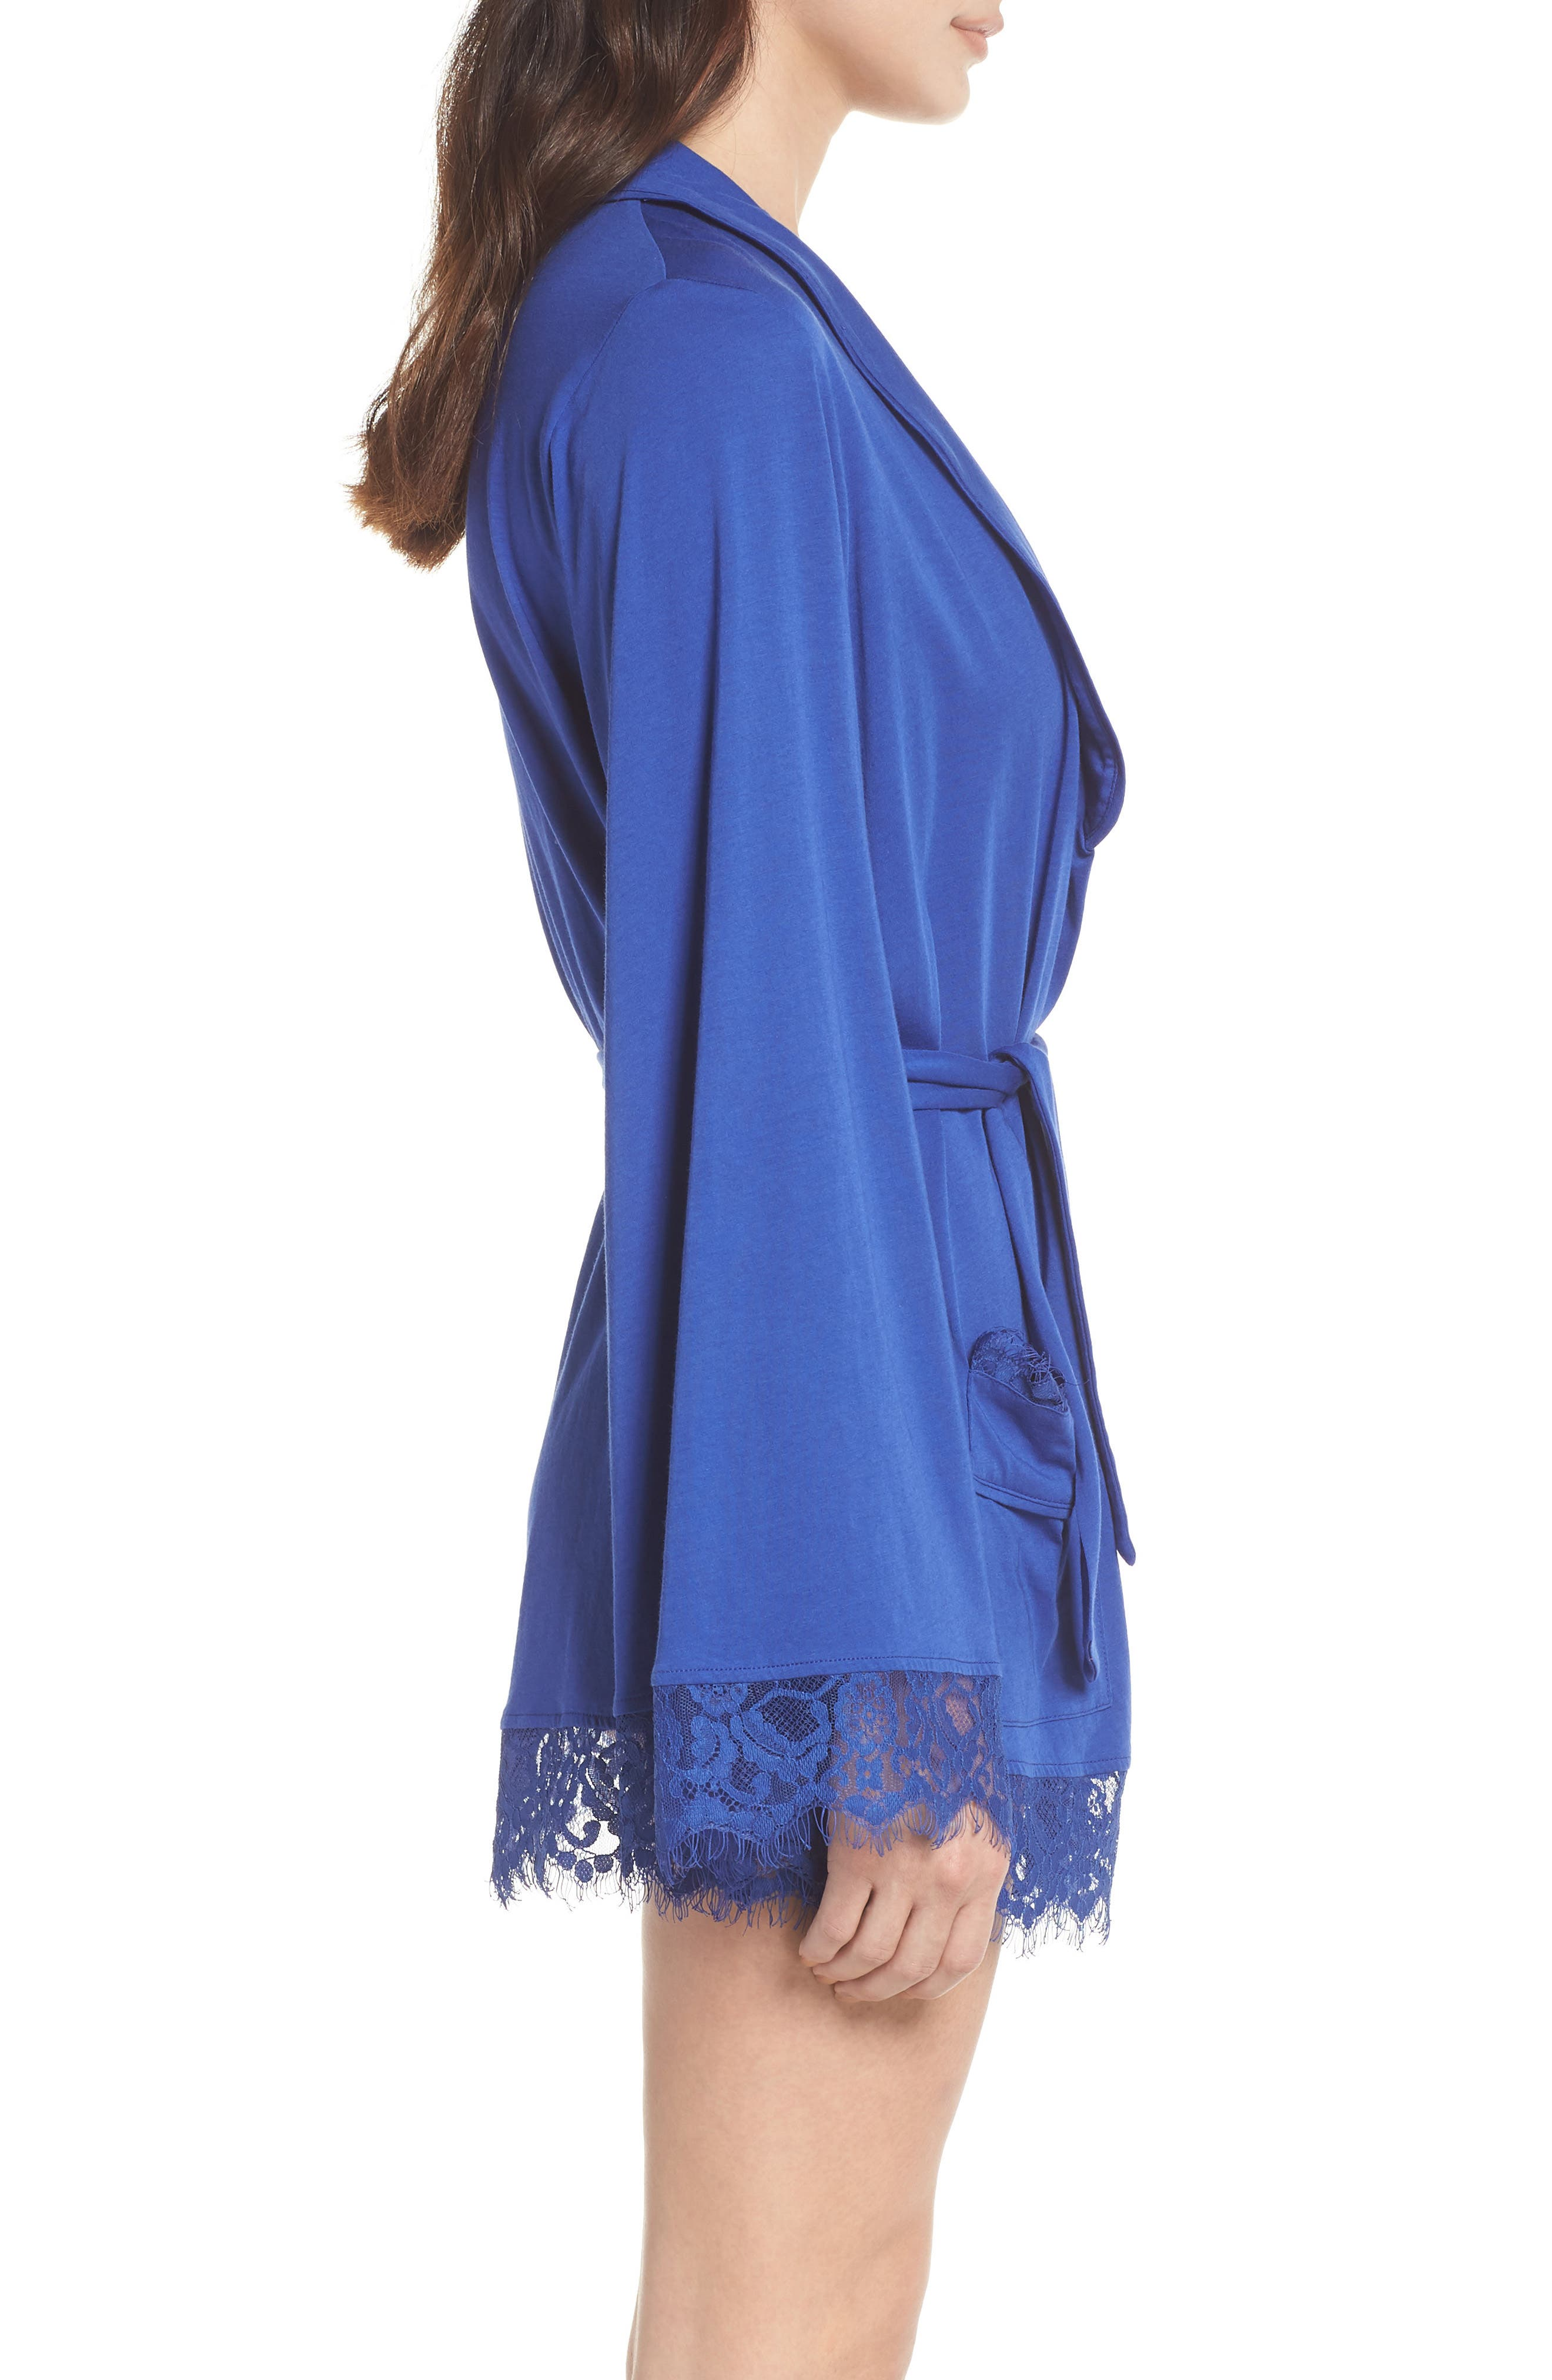 Sweetest Thing Robe,                             Alternate thumbnail 3, color,                             Blue